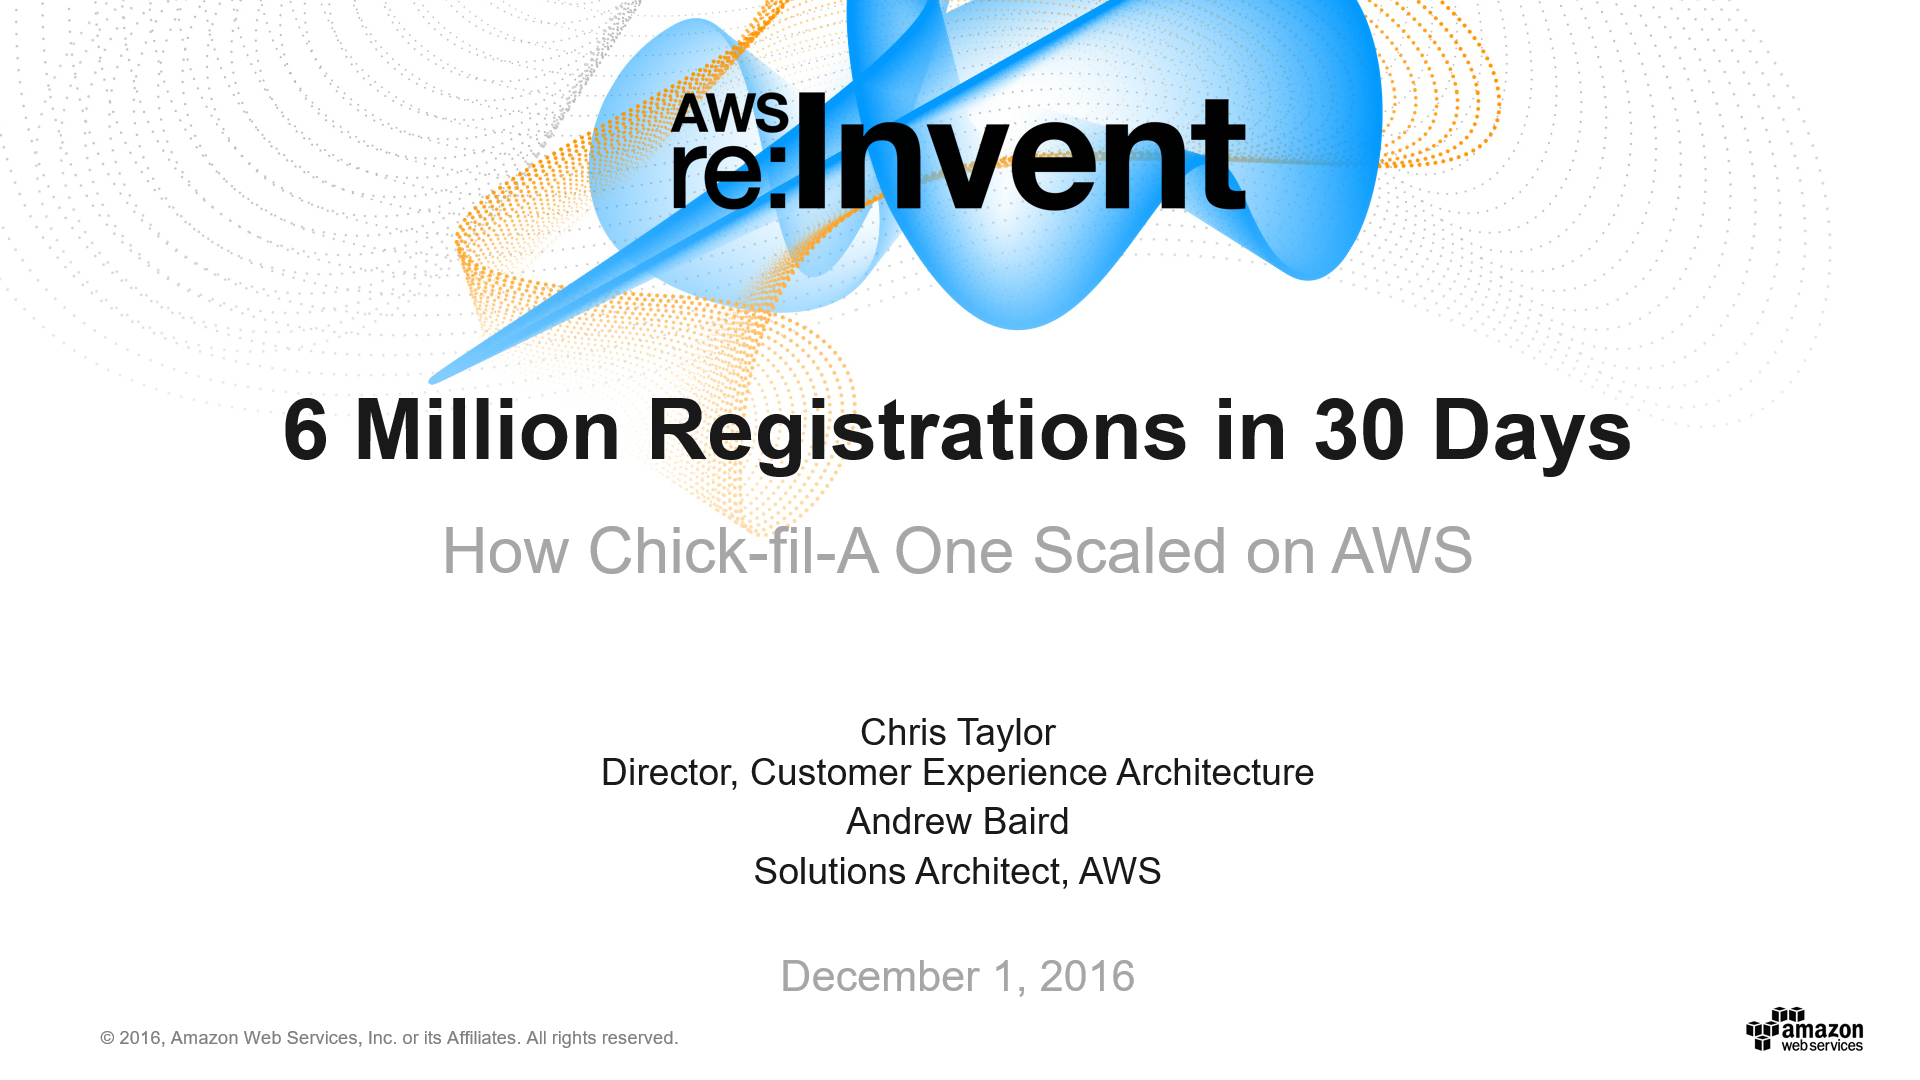 DAT313 6 Million New Registrations in 30 Days How the Chick-fil-A One App Scaled with AWS